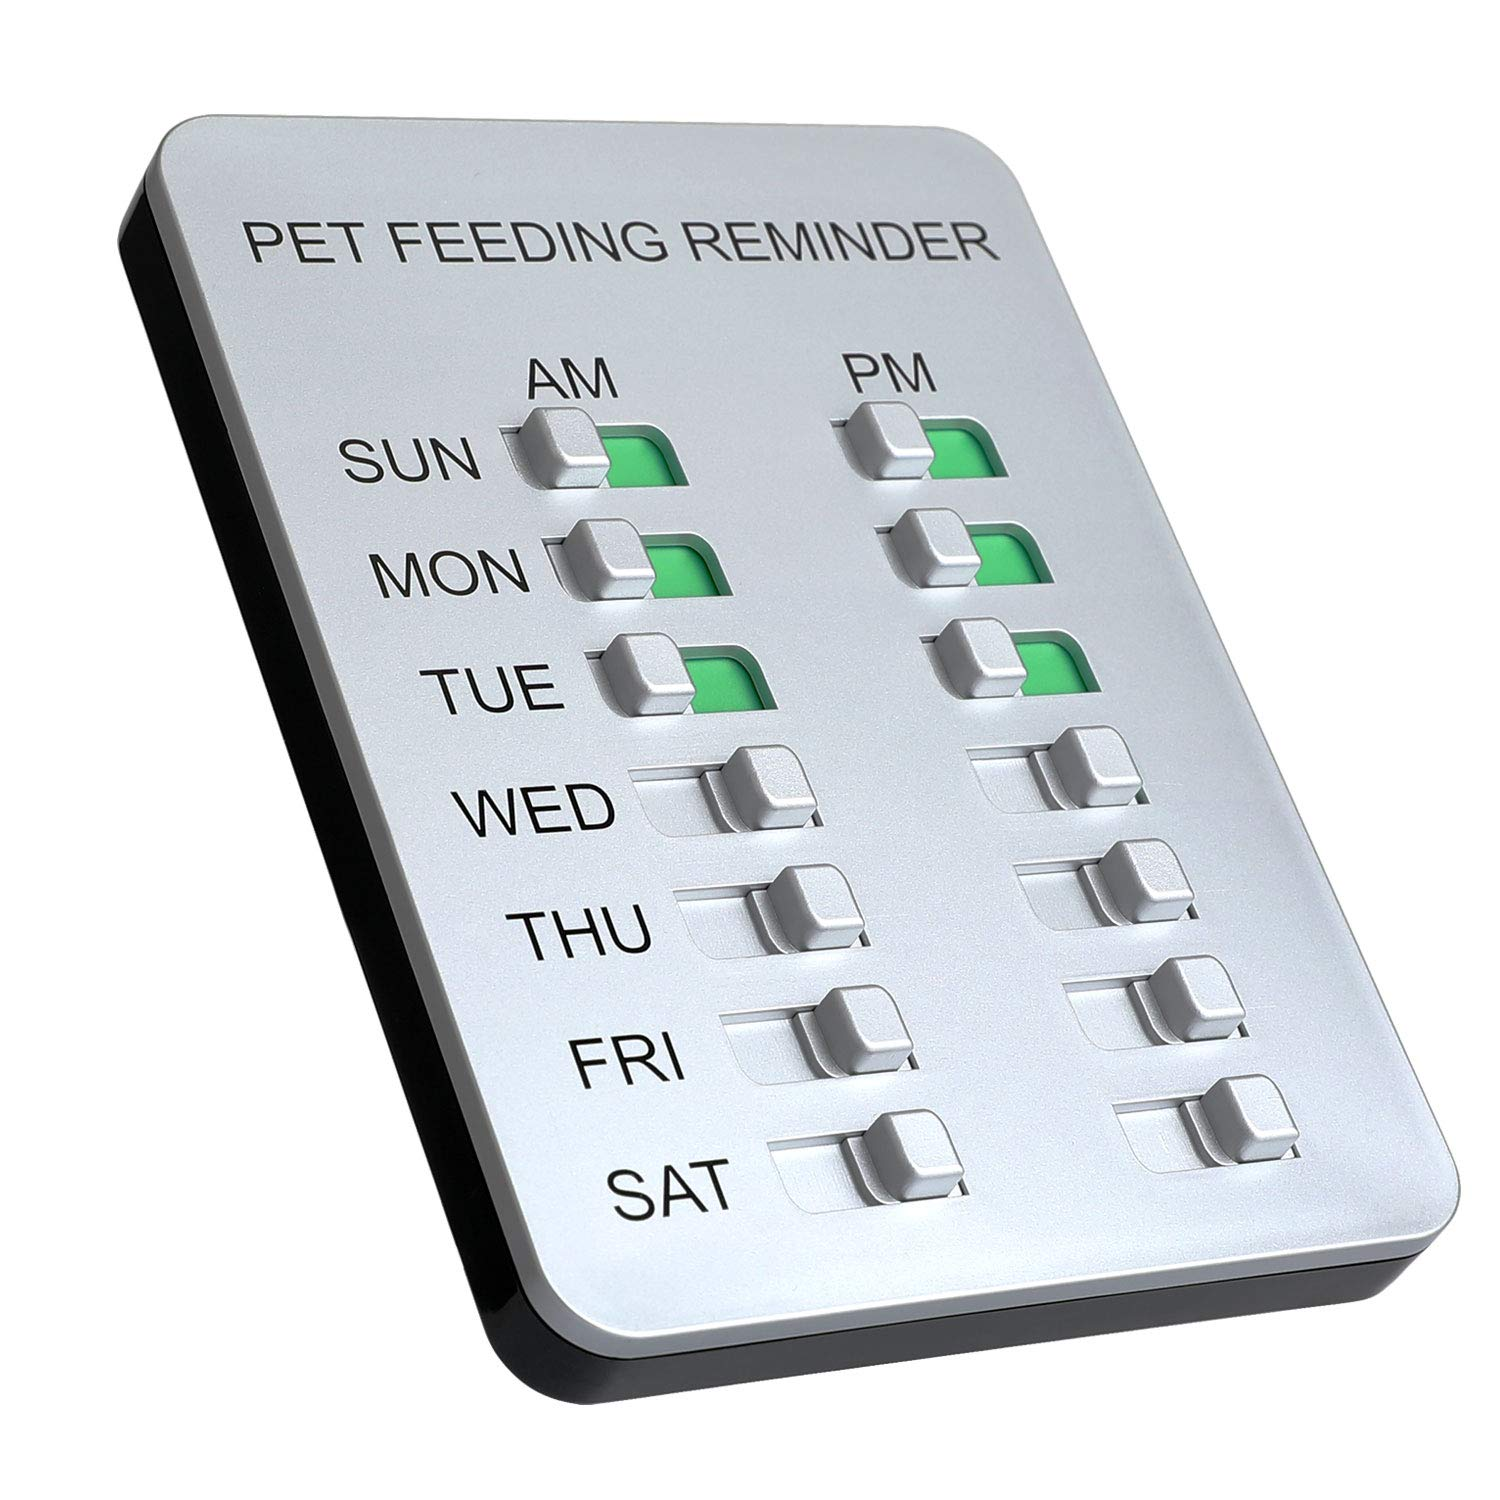 Allinko Dog Feeding Reminder Magnetic Reminder Sticker, AM/PM Daily  Indication Chart Feed Your Puppy Dog Cat, Easy to Stick on Any Magnet or  Plastic